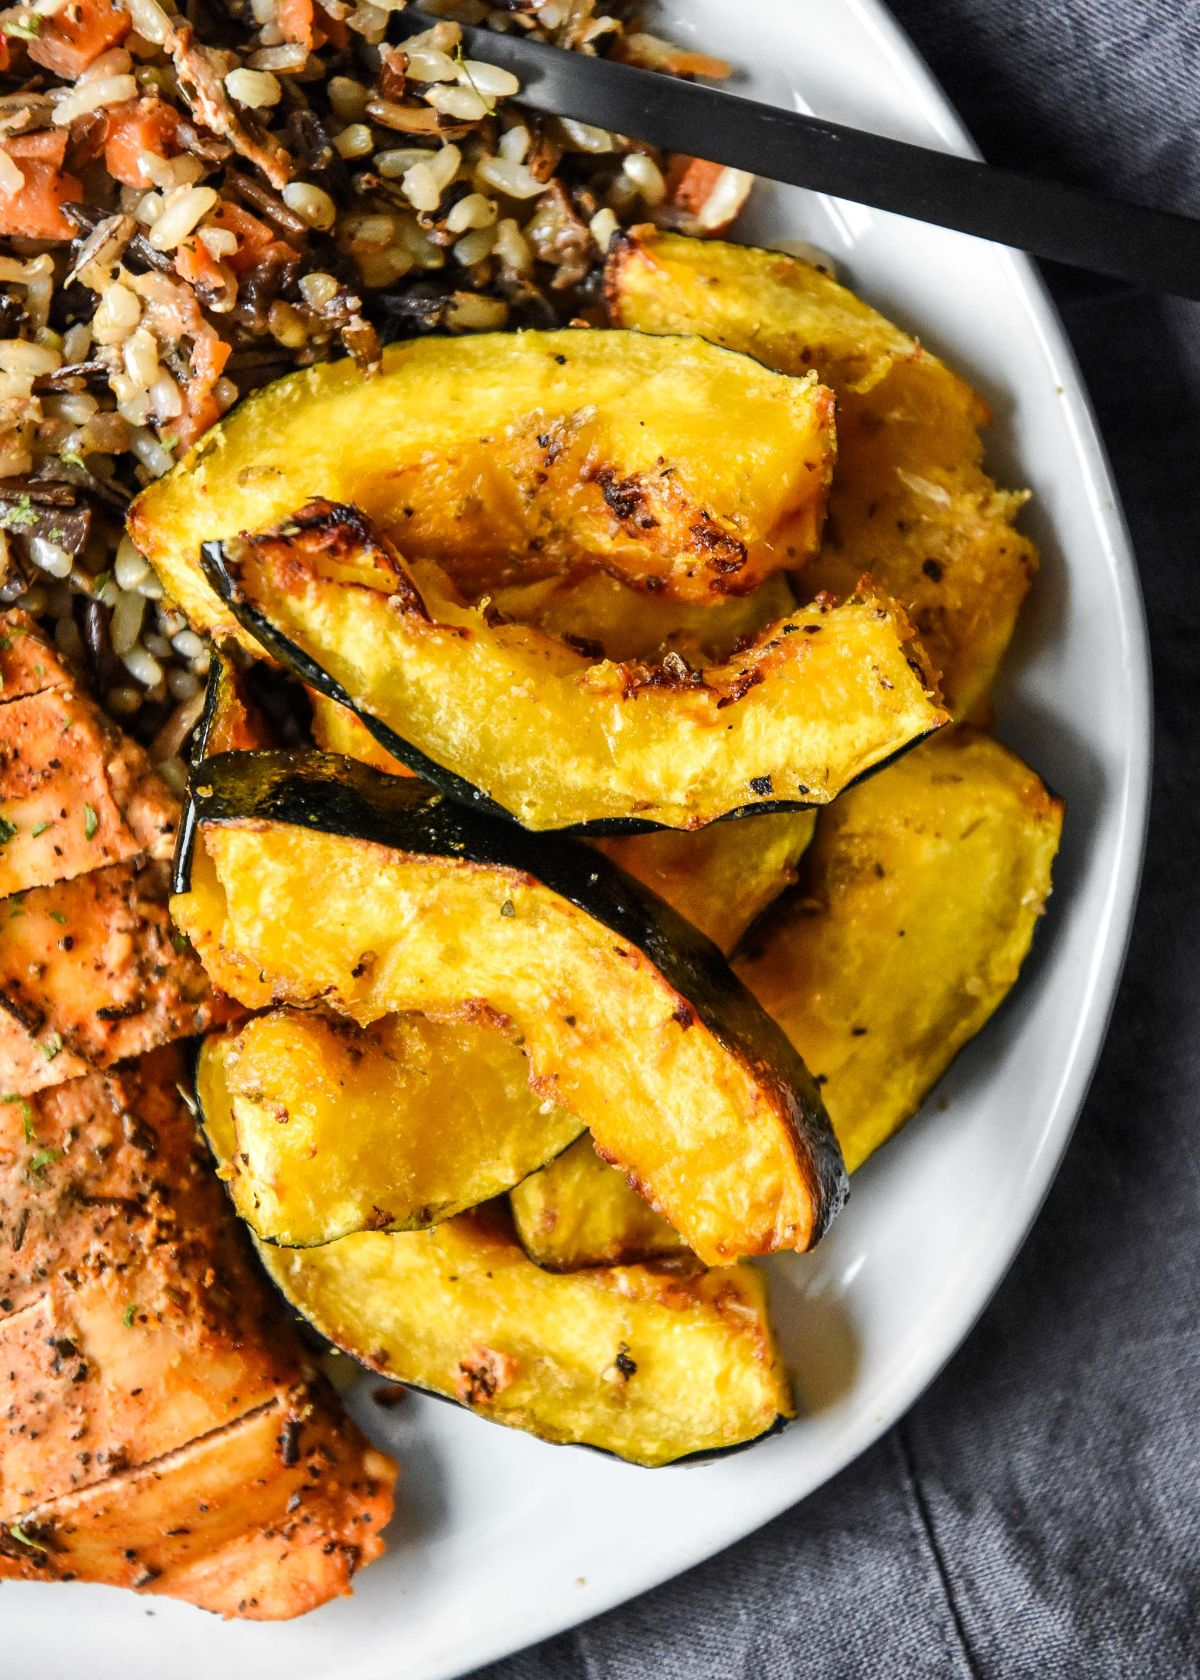 a partial view of a plate full of acorn squash slices next to a pile of grains